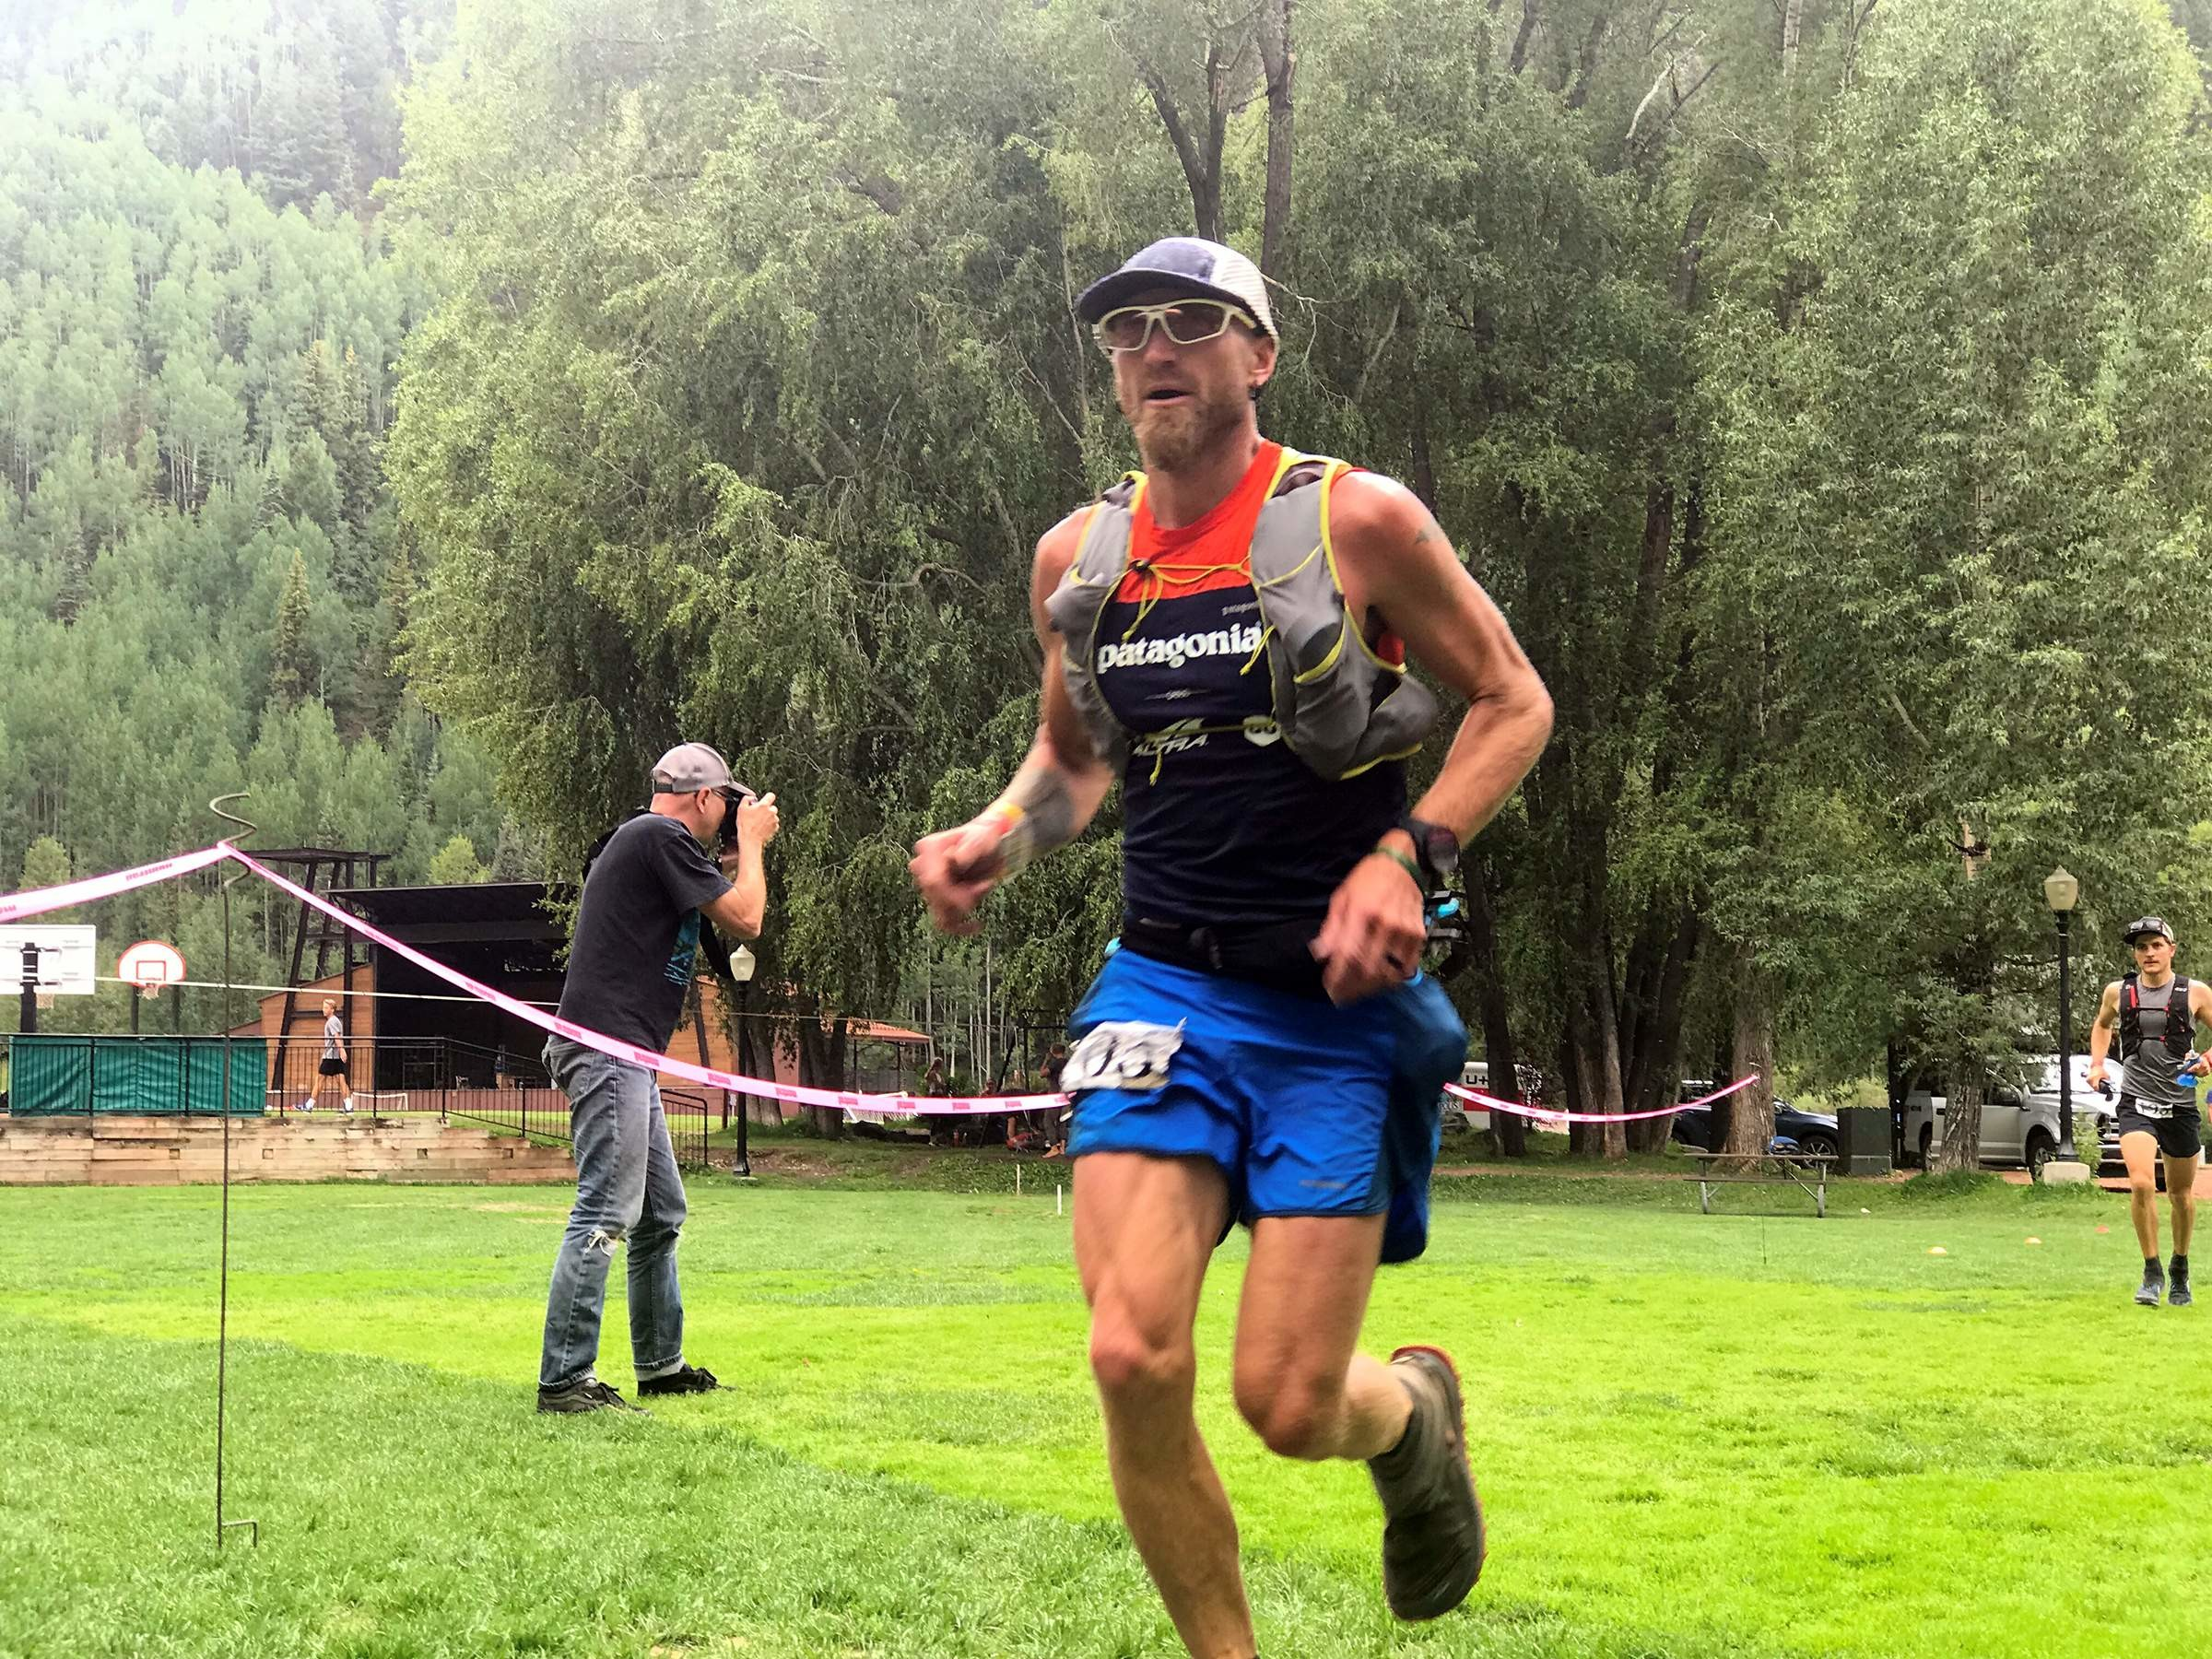 Jeff Browning just got into the 2018 Hardrock 100 ultra-marathon two weeks ago